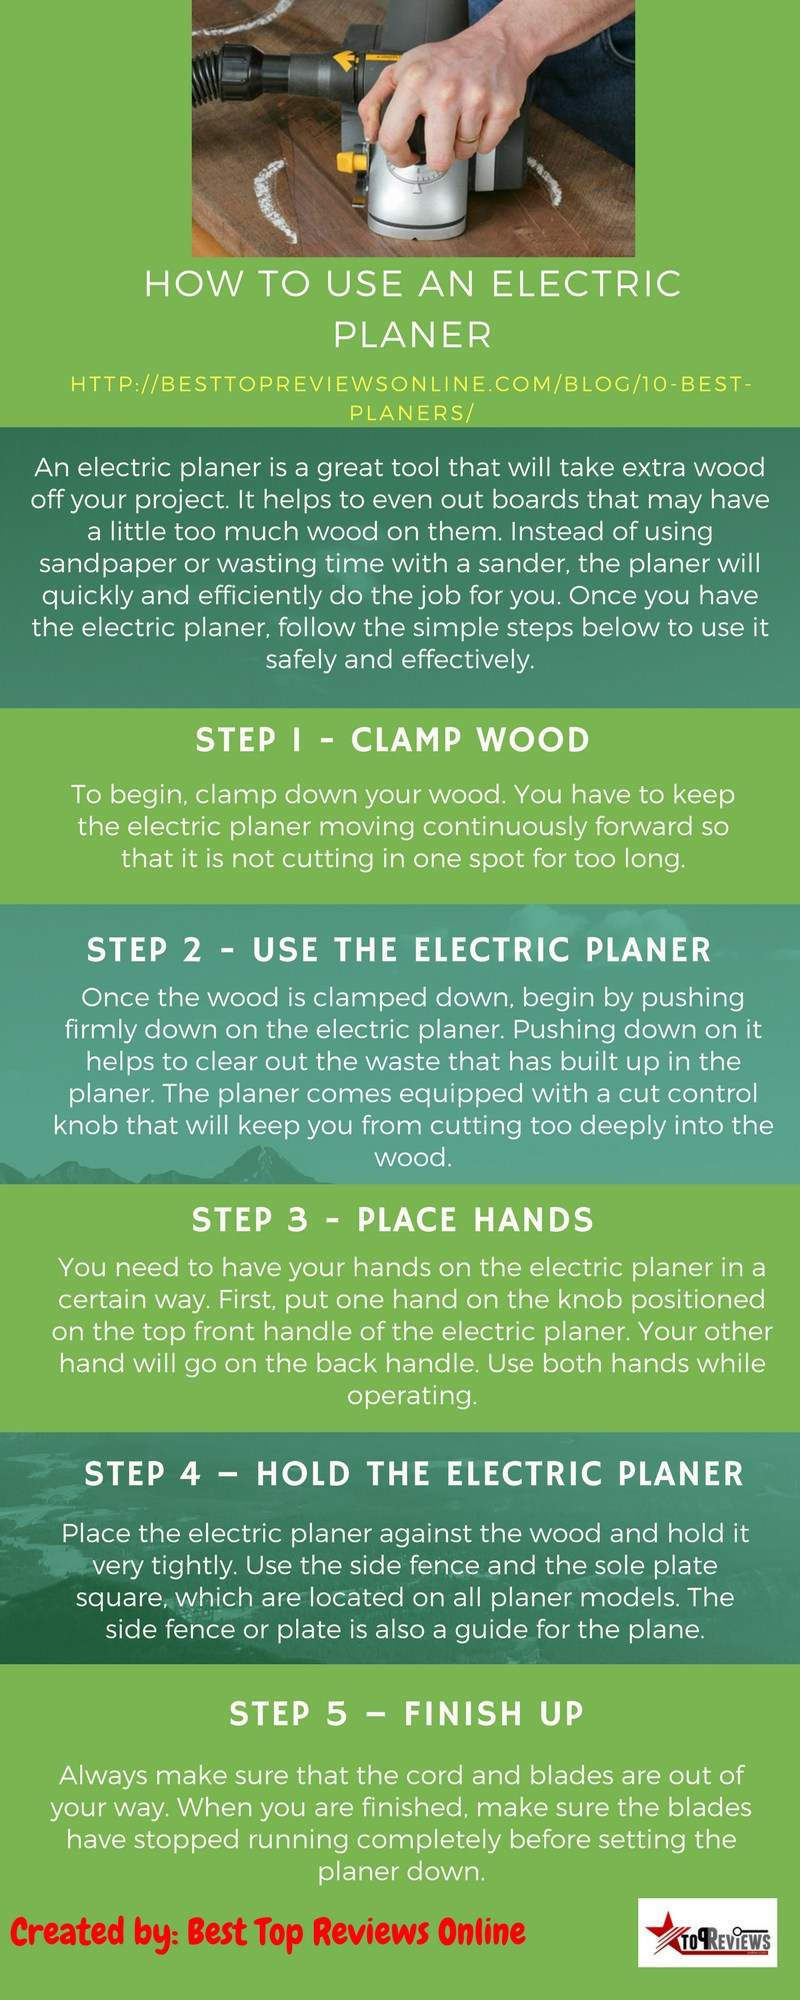 How-to-use-Planer